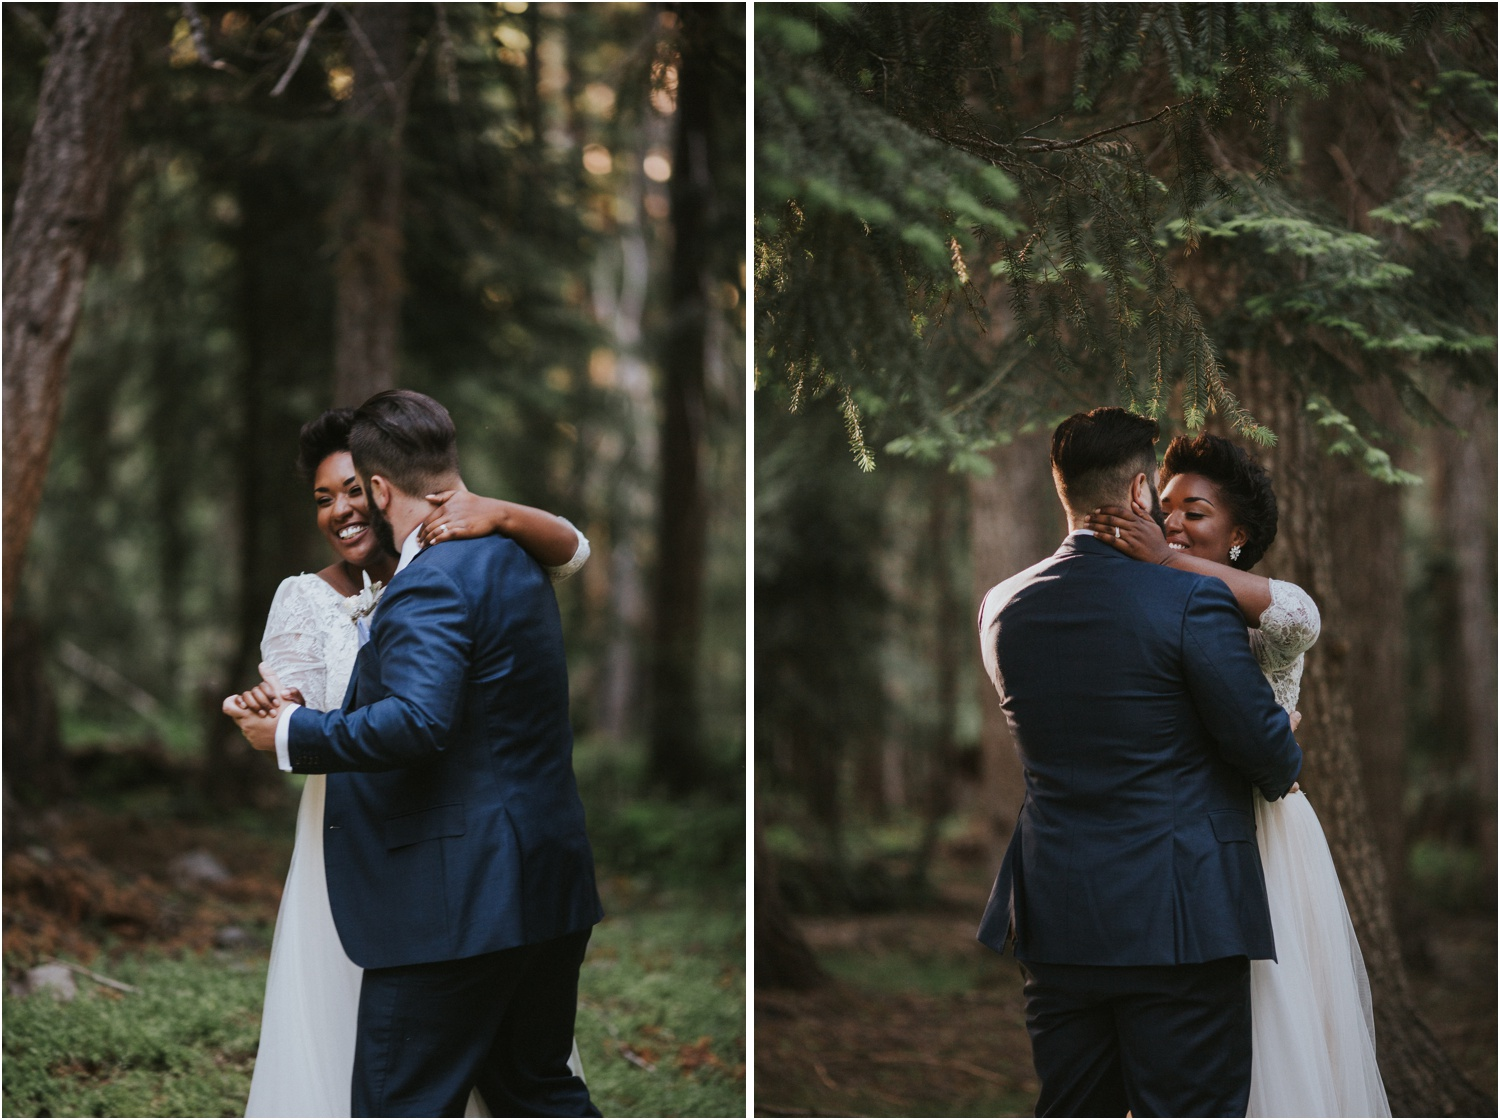 lovestoriesco-amber-phinisee-seattle-mount-rainier-elopement_0060.jpg